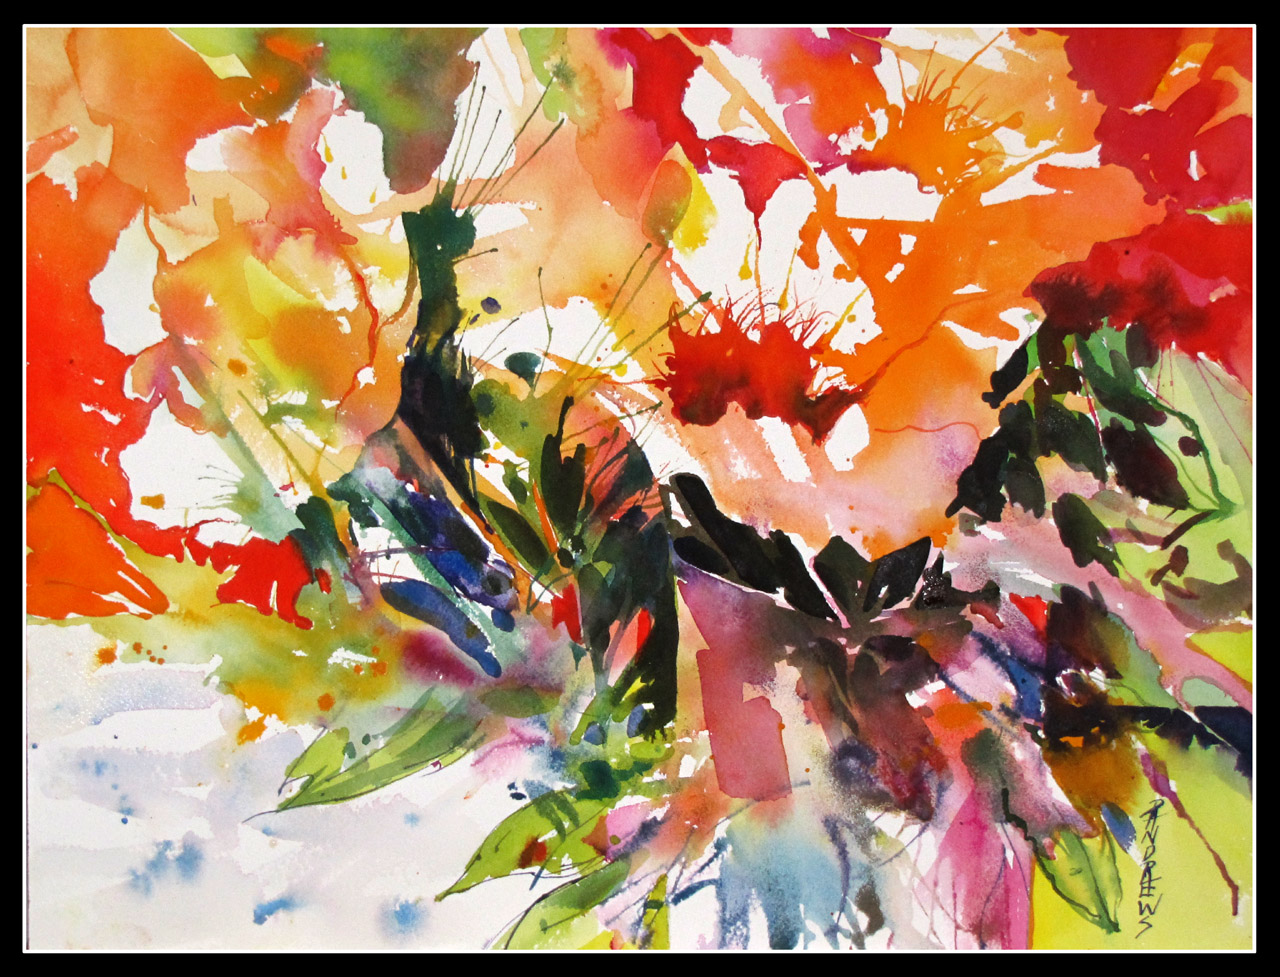 Bountiful abstract floral watercolor texas artist rae andrews